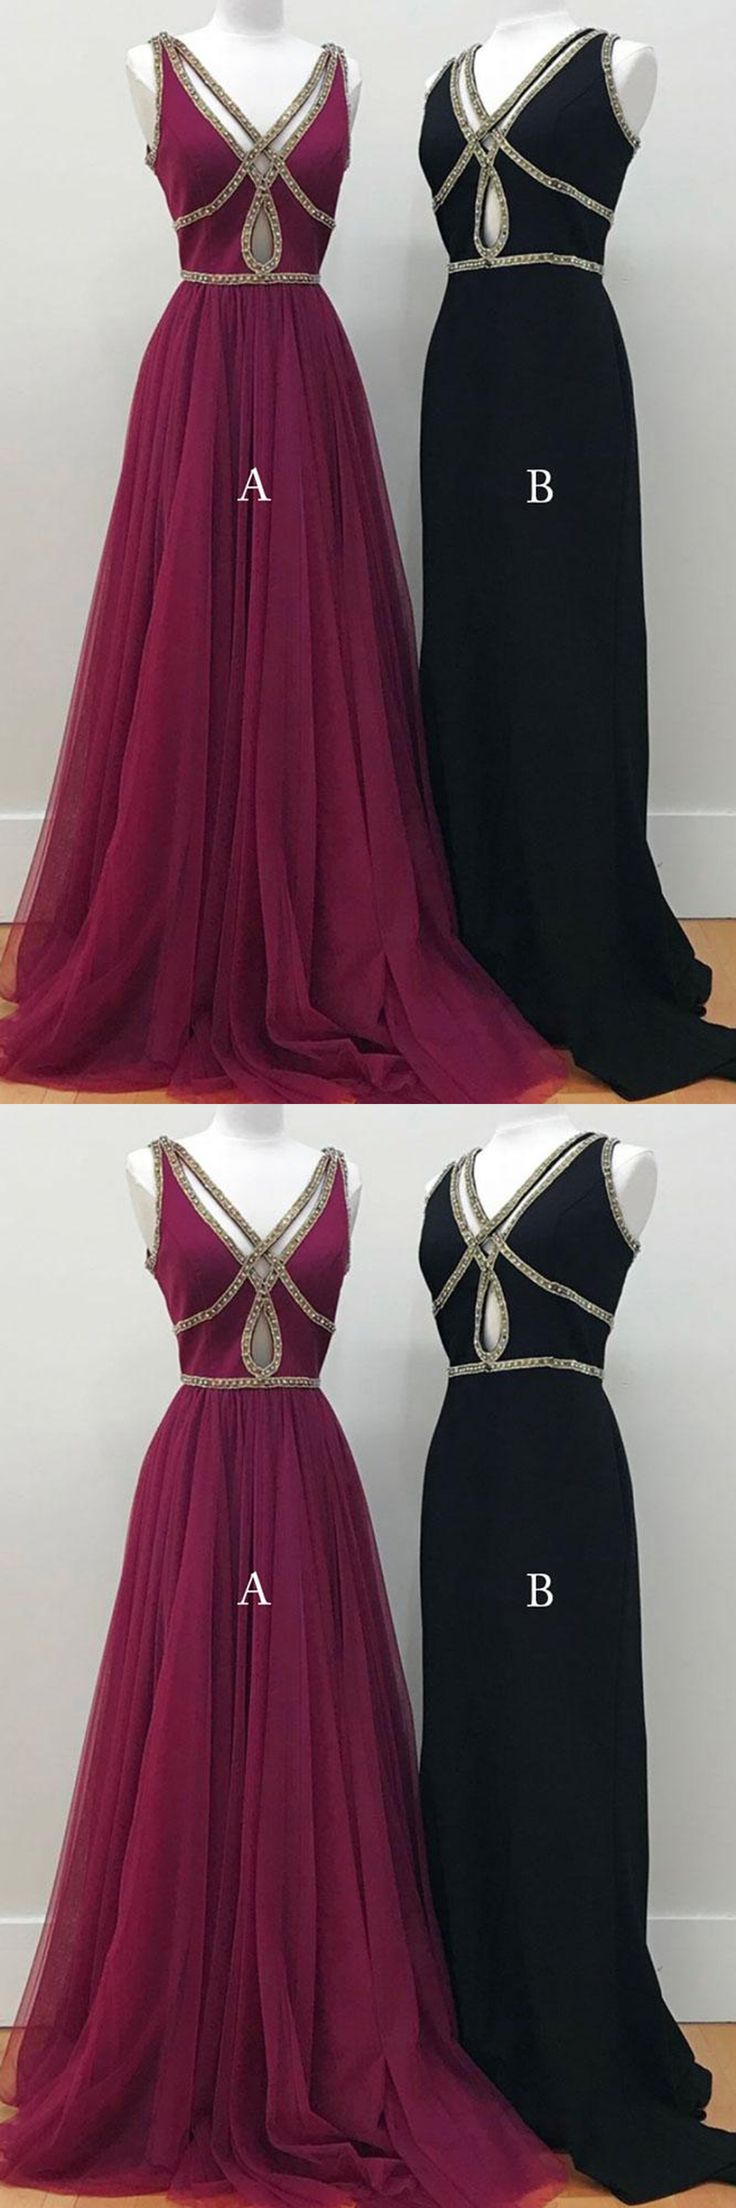 Simple hollow out long V neck evening dresses, long beaded tulle prom dress